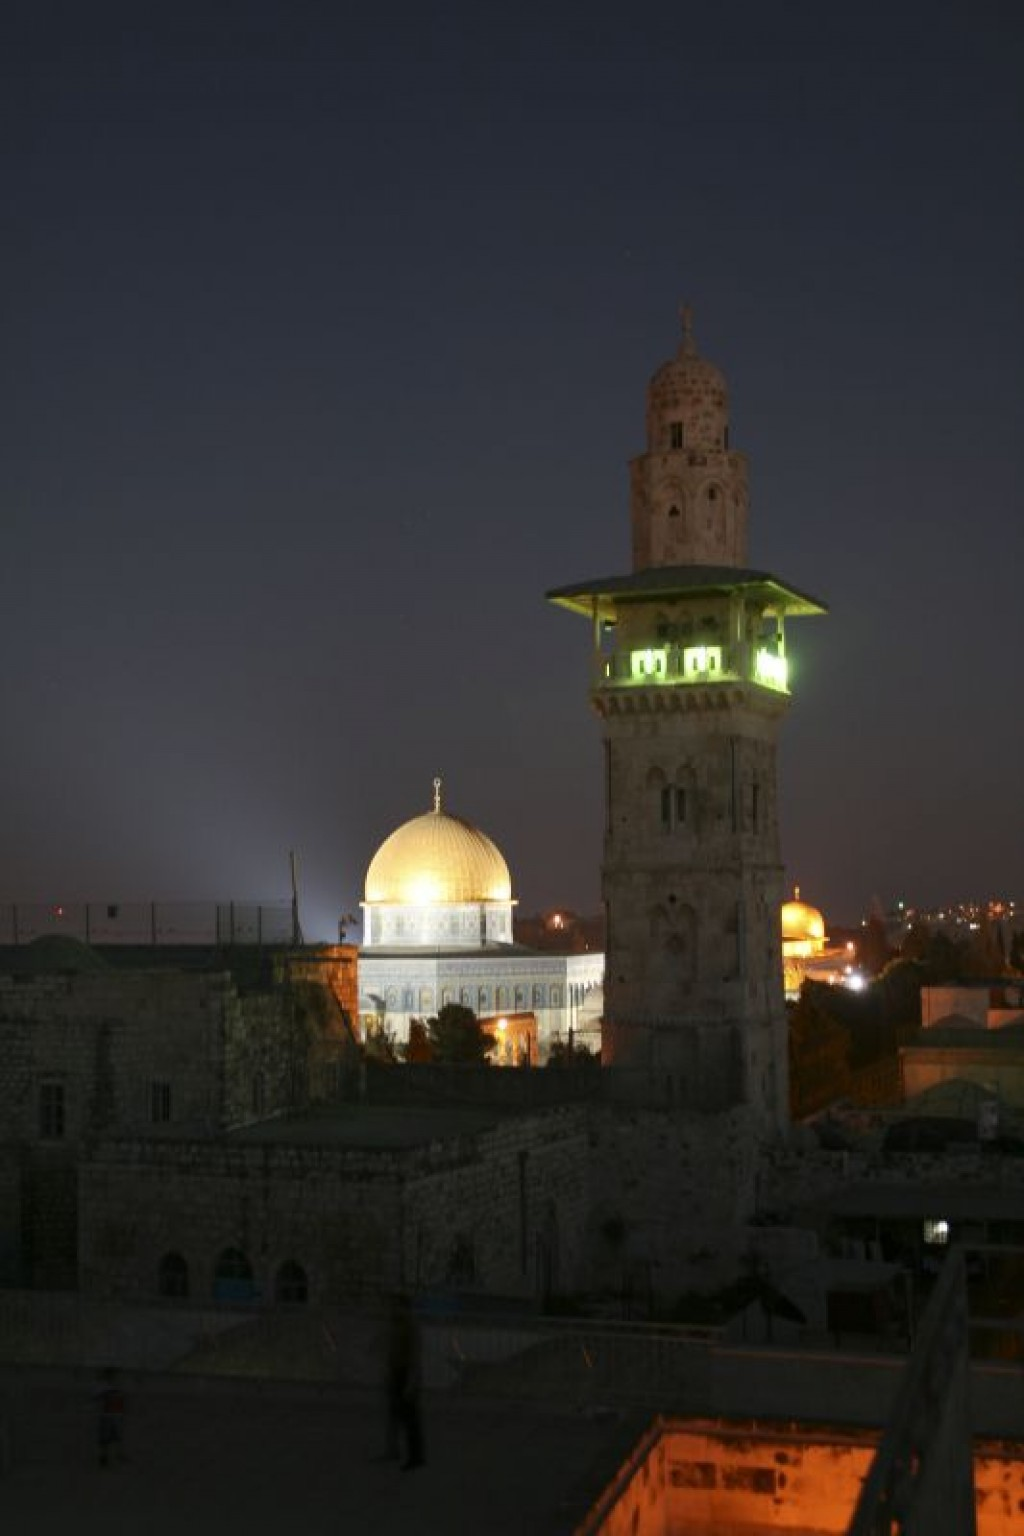 NIght time view of the Dome of the Rock